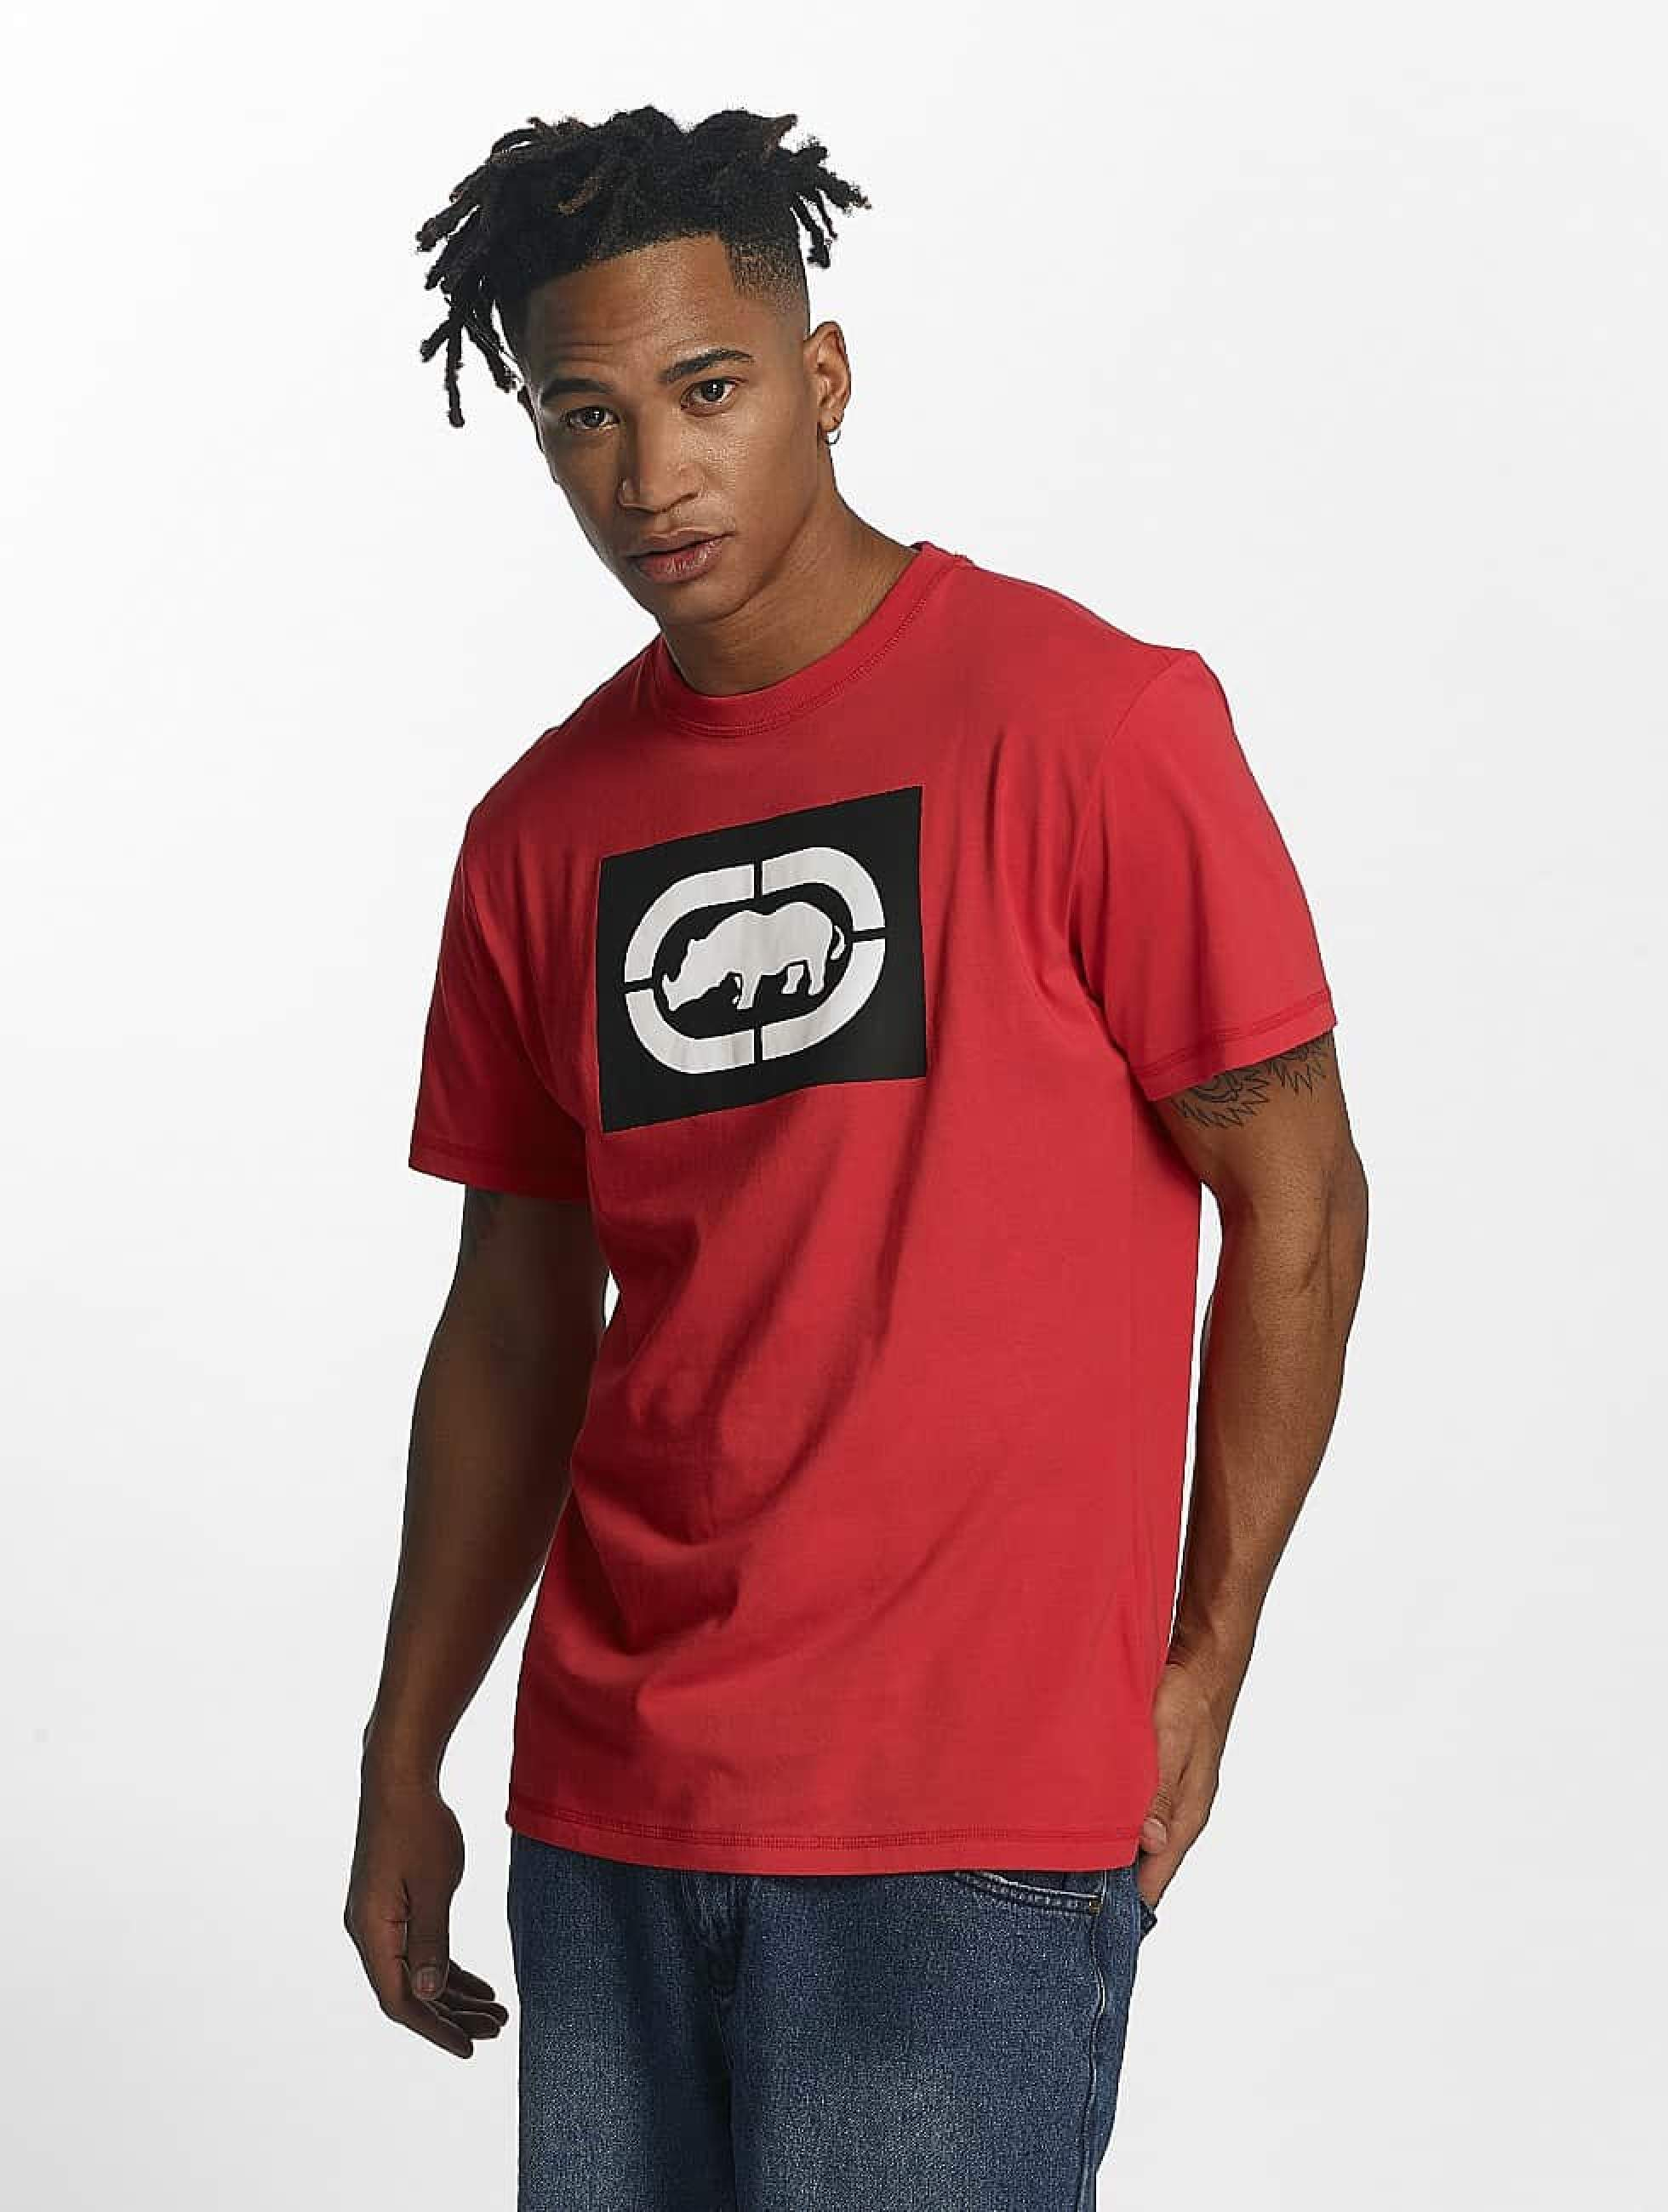 Ecko Unltd. / T-Shirt Base in red 6XL